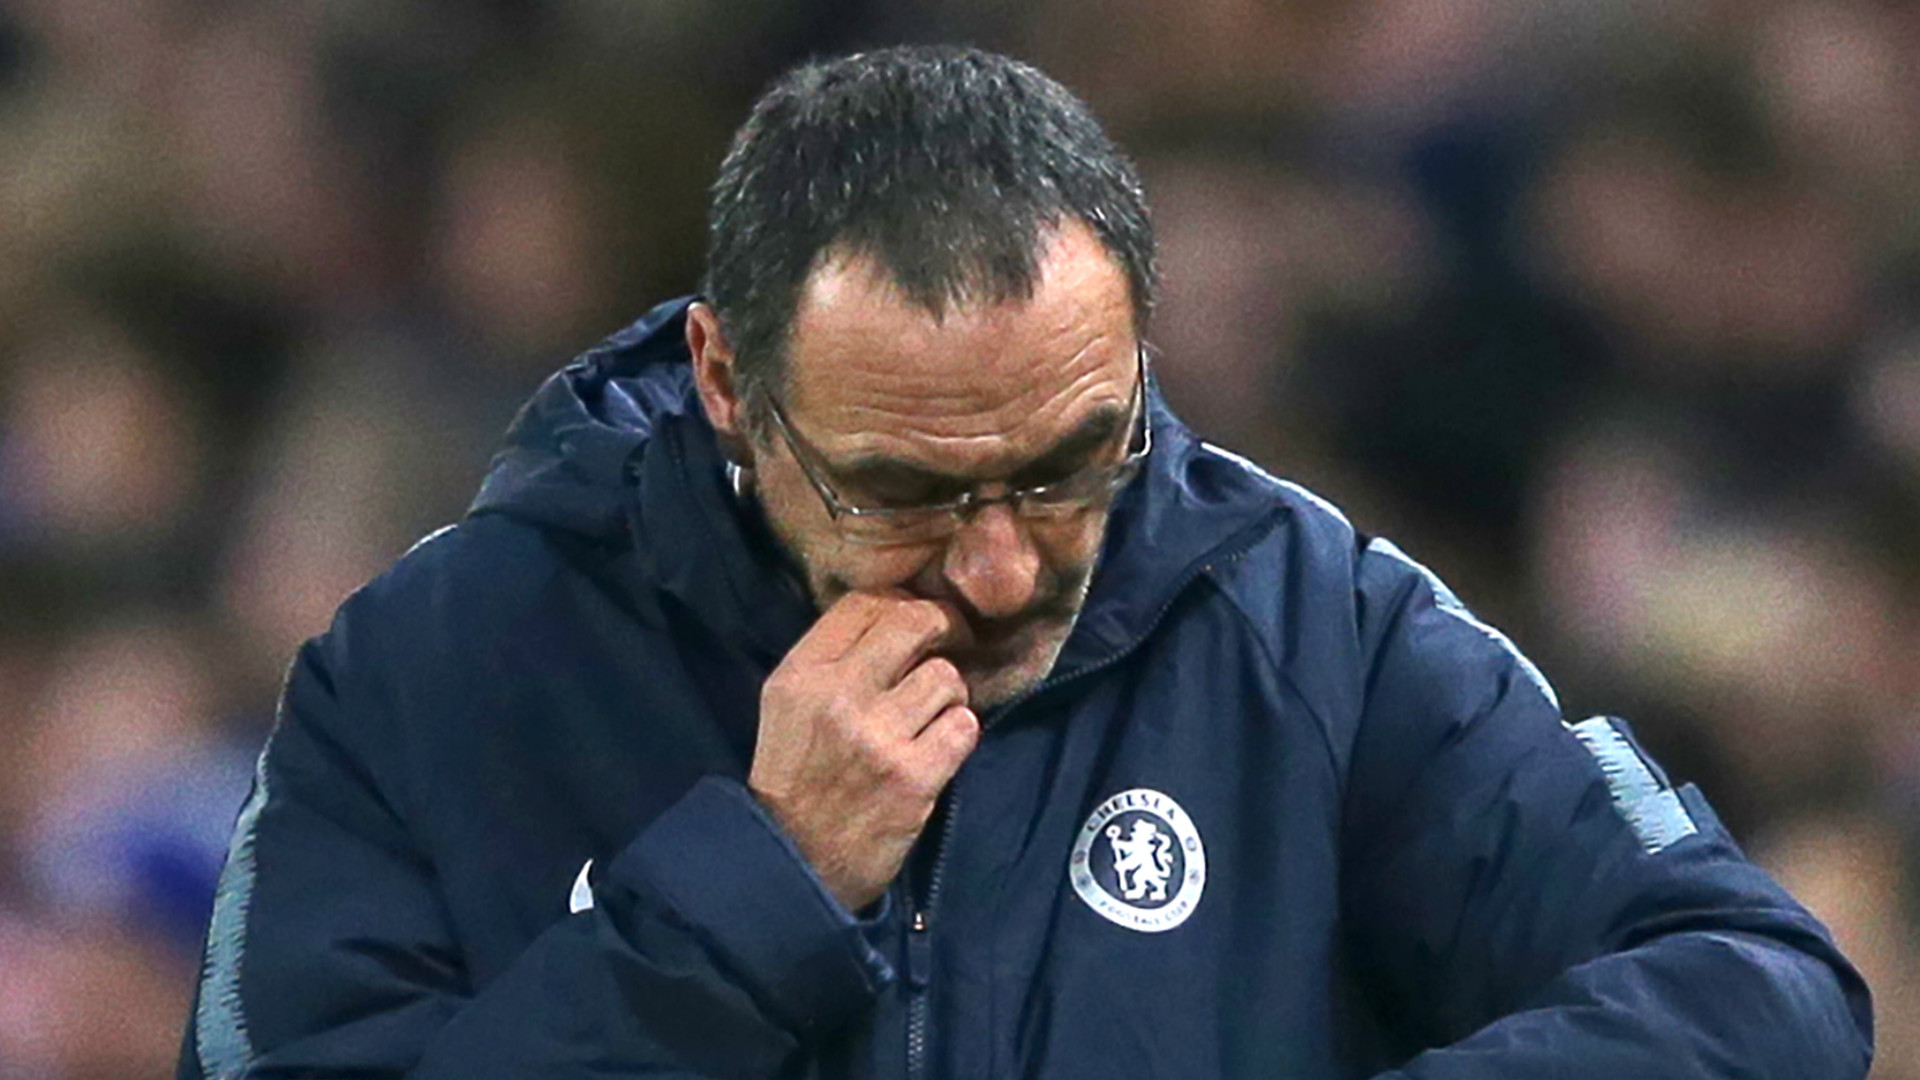 Chelsea handed transfer ban - what happens next?